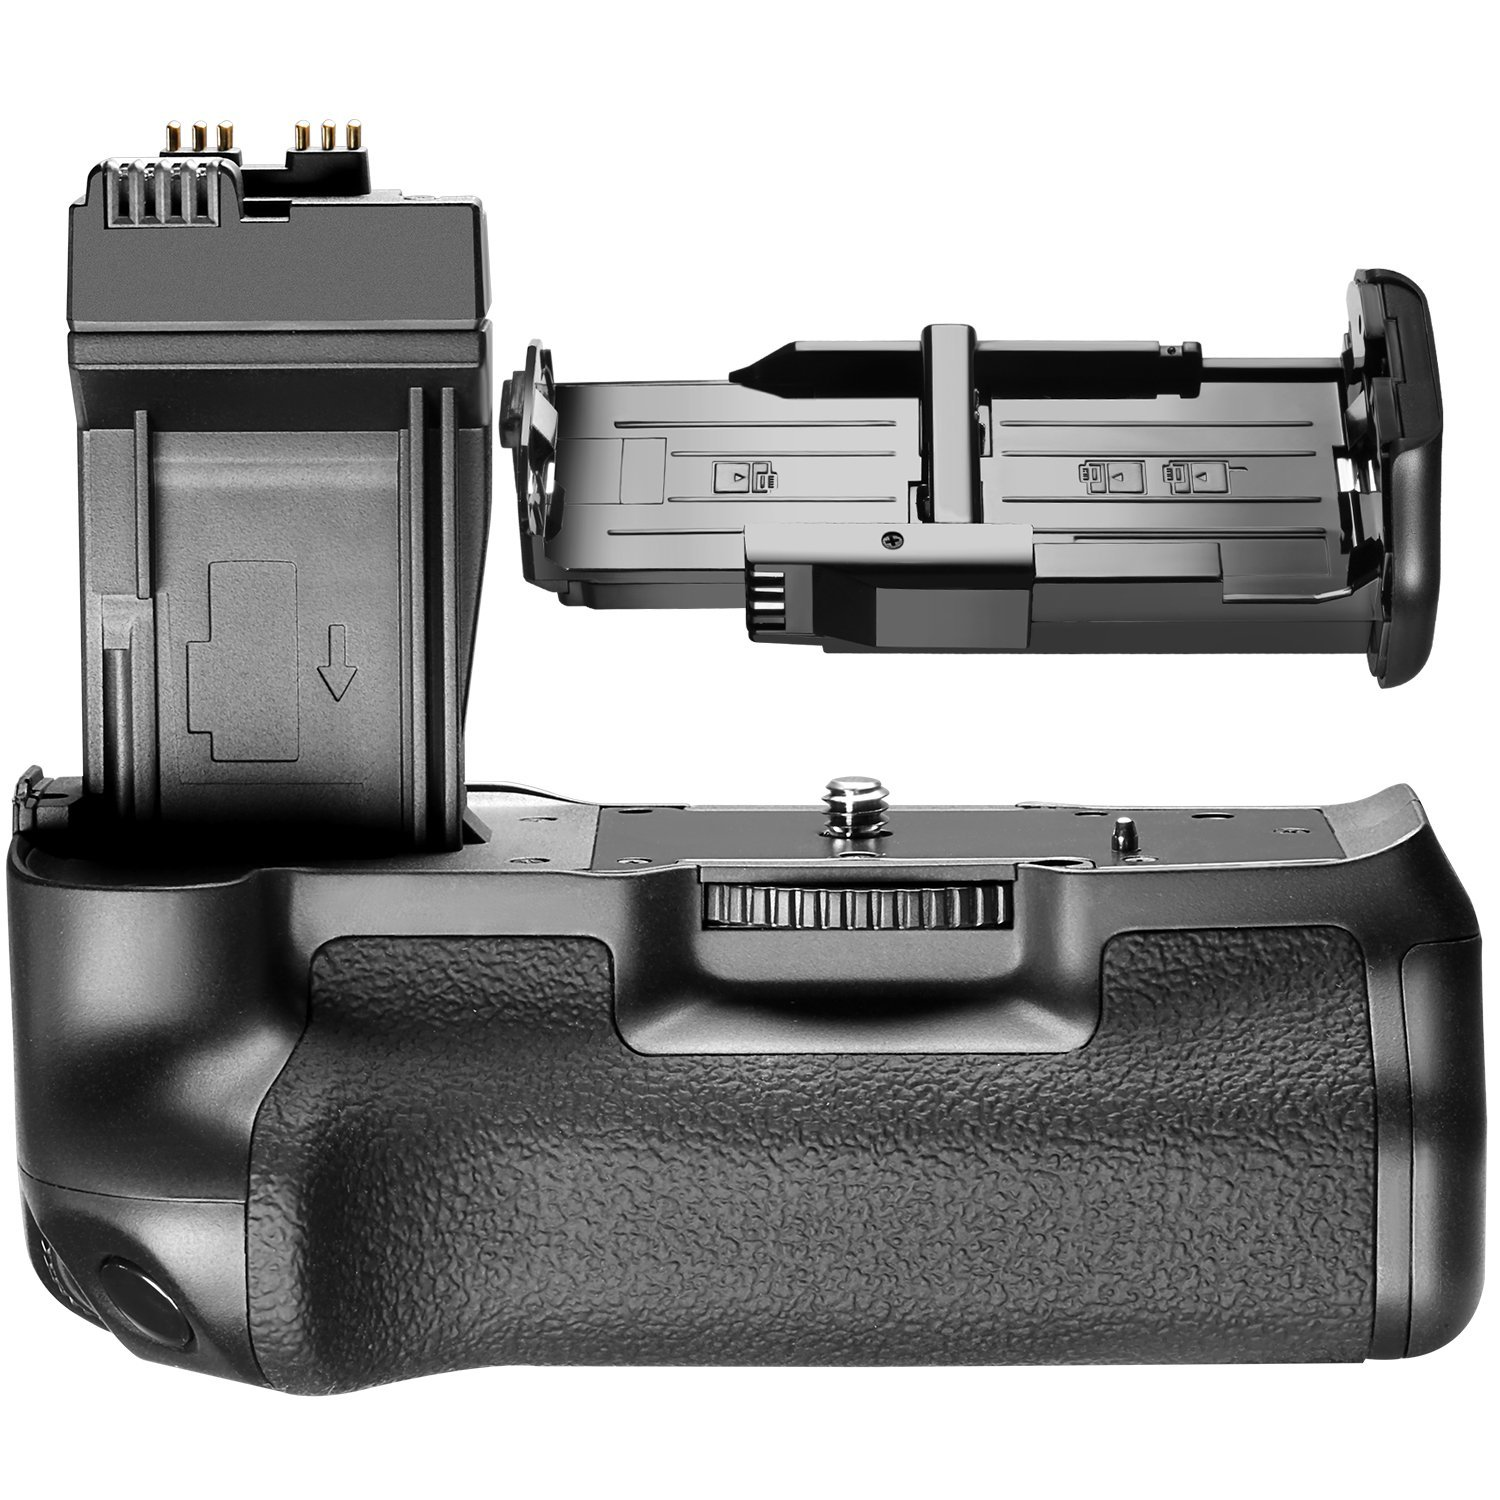 Neewer BG-E8 Replacement Battery Grip for Canon EOS 550D 600D 650D 700D/ Rebel T2i T3i T4i T5i SLR Cameras 10000601